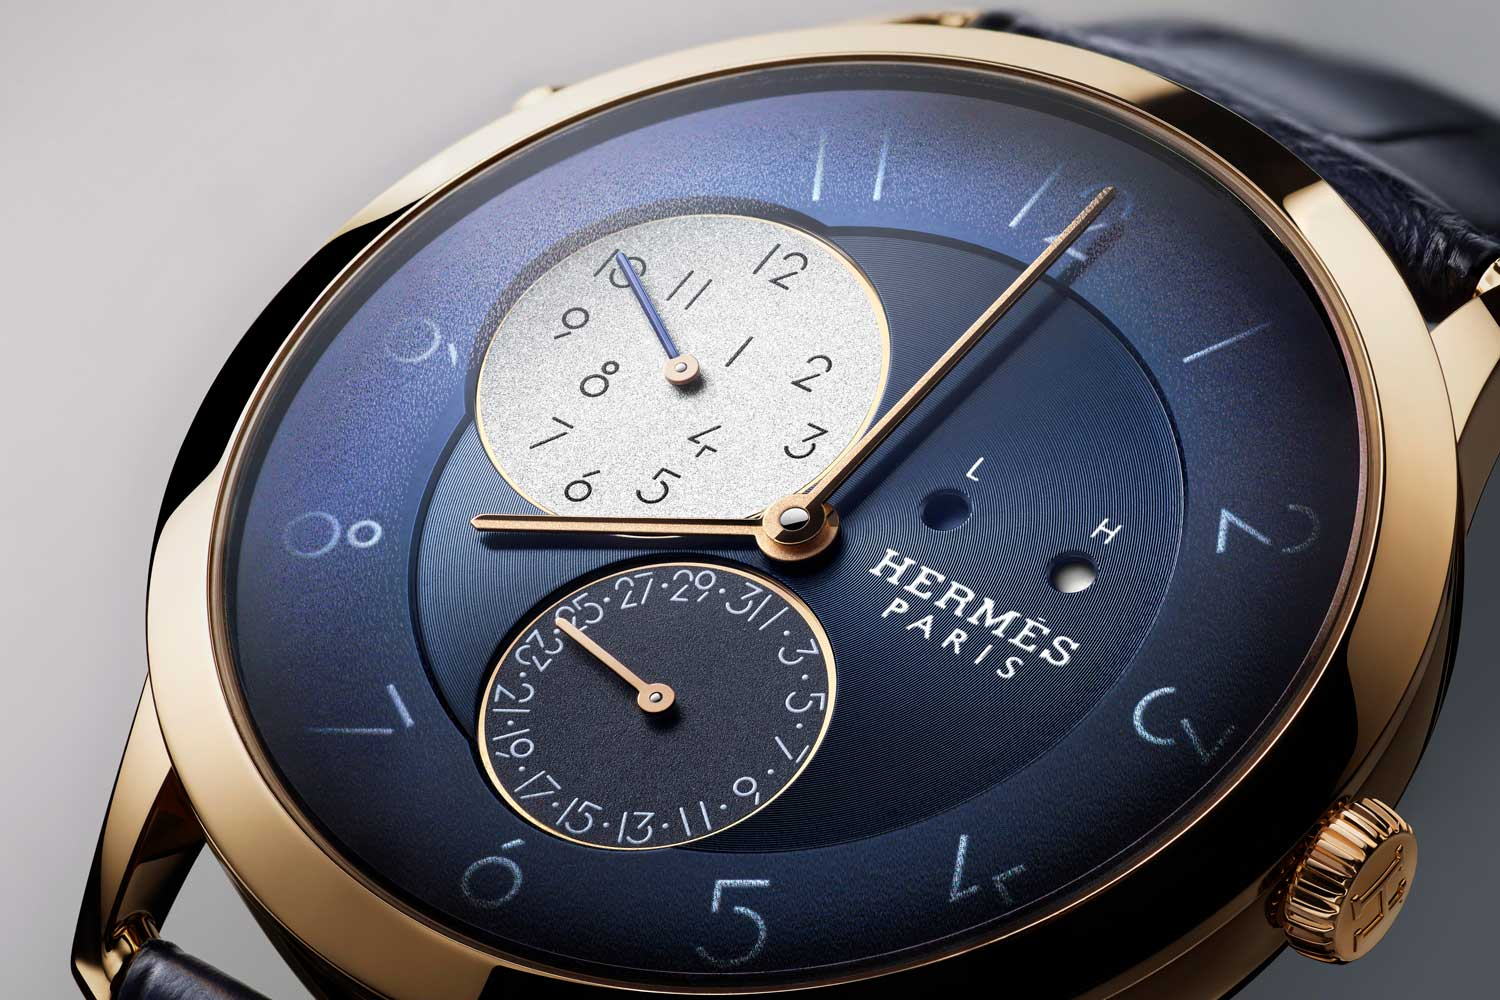 The Slim d'Hermès GMT features a special module designed by Agenhor for the brand's H1950 caliber.